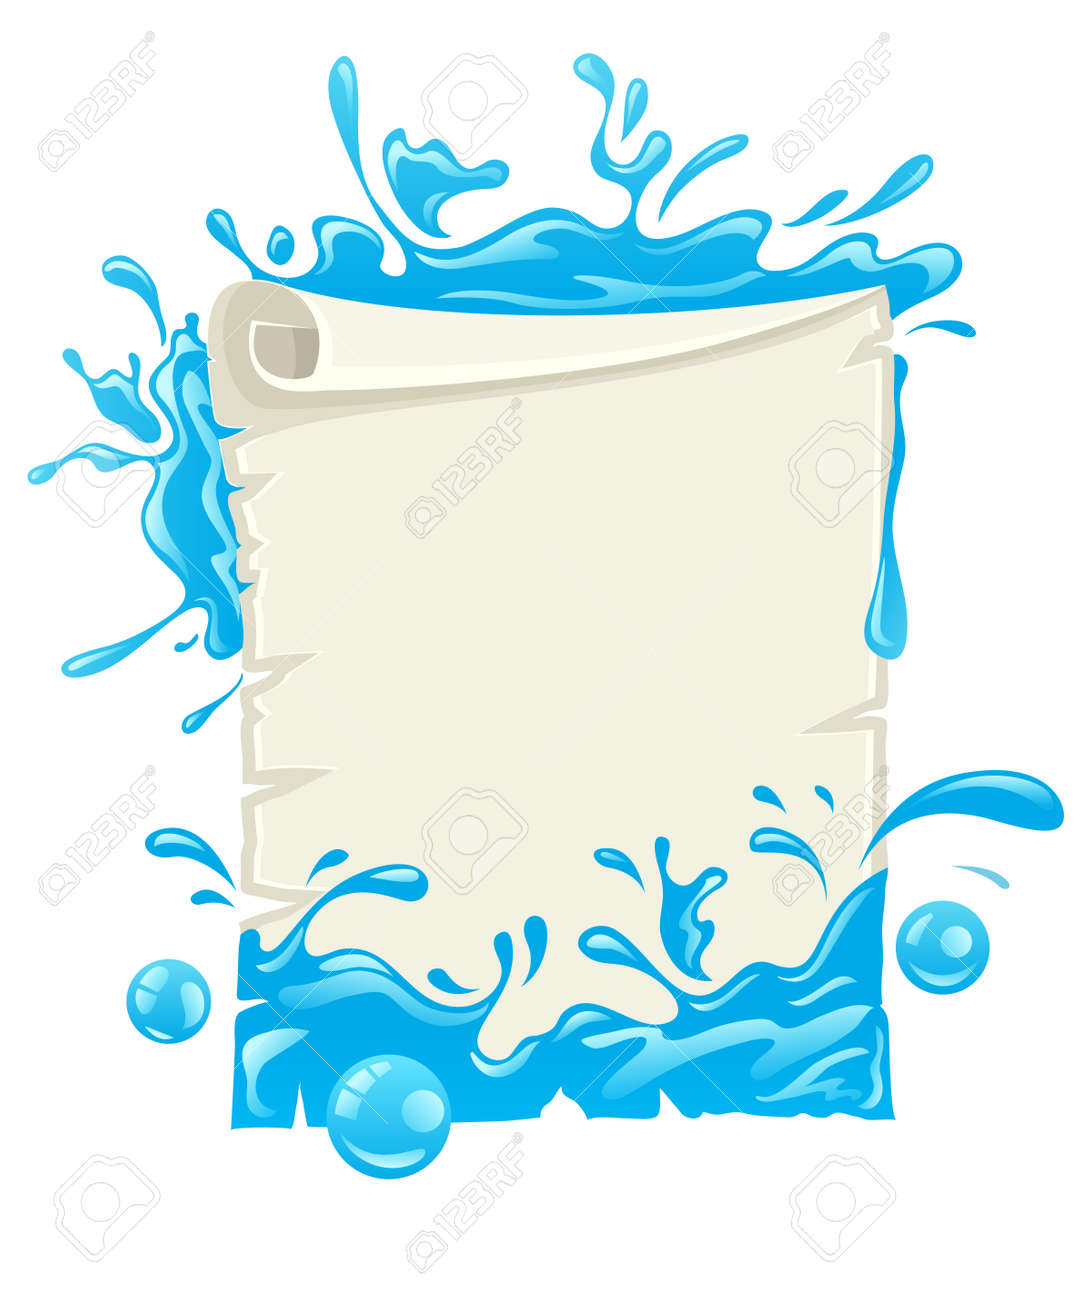 Poster design eps - Paper Script Poster Design Blank Template With Water Splashes Eps10 Vector Illustration Isolated On